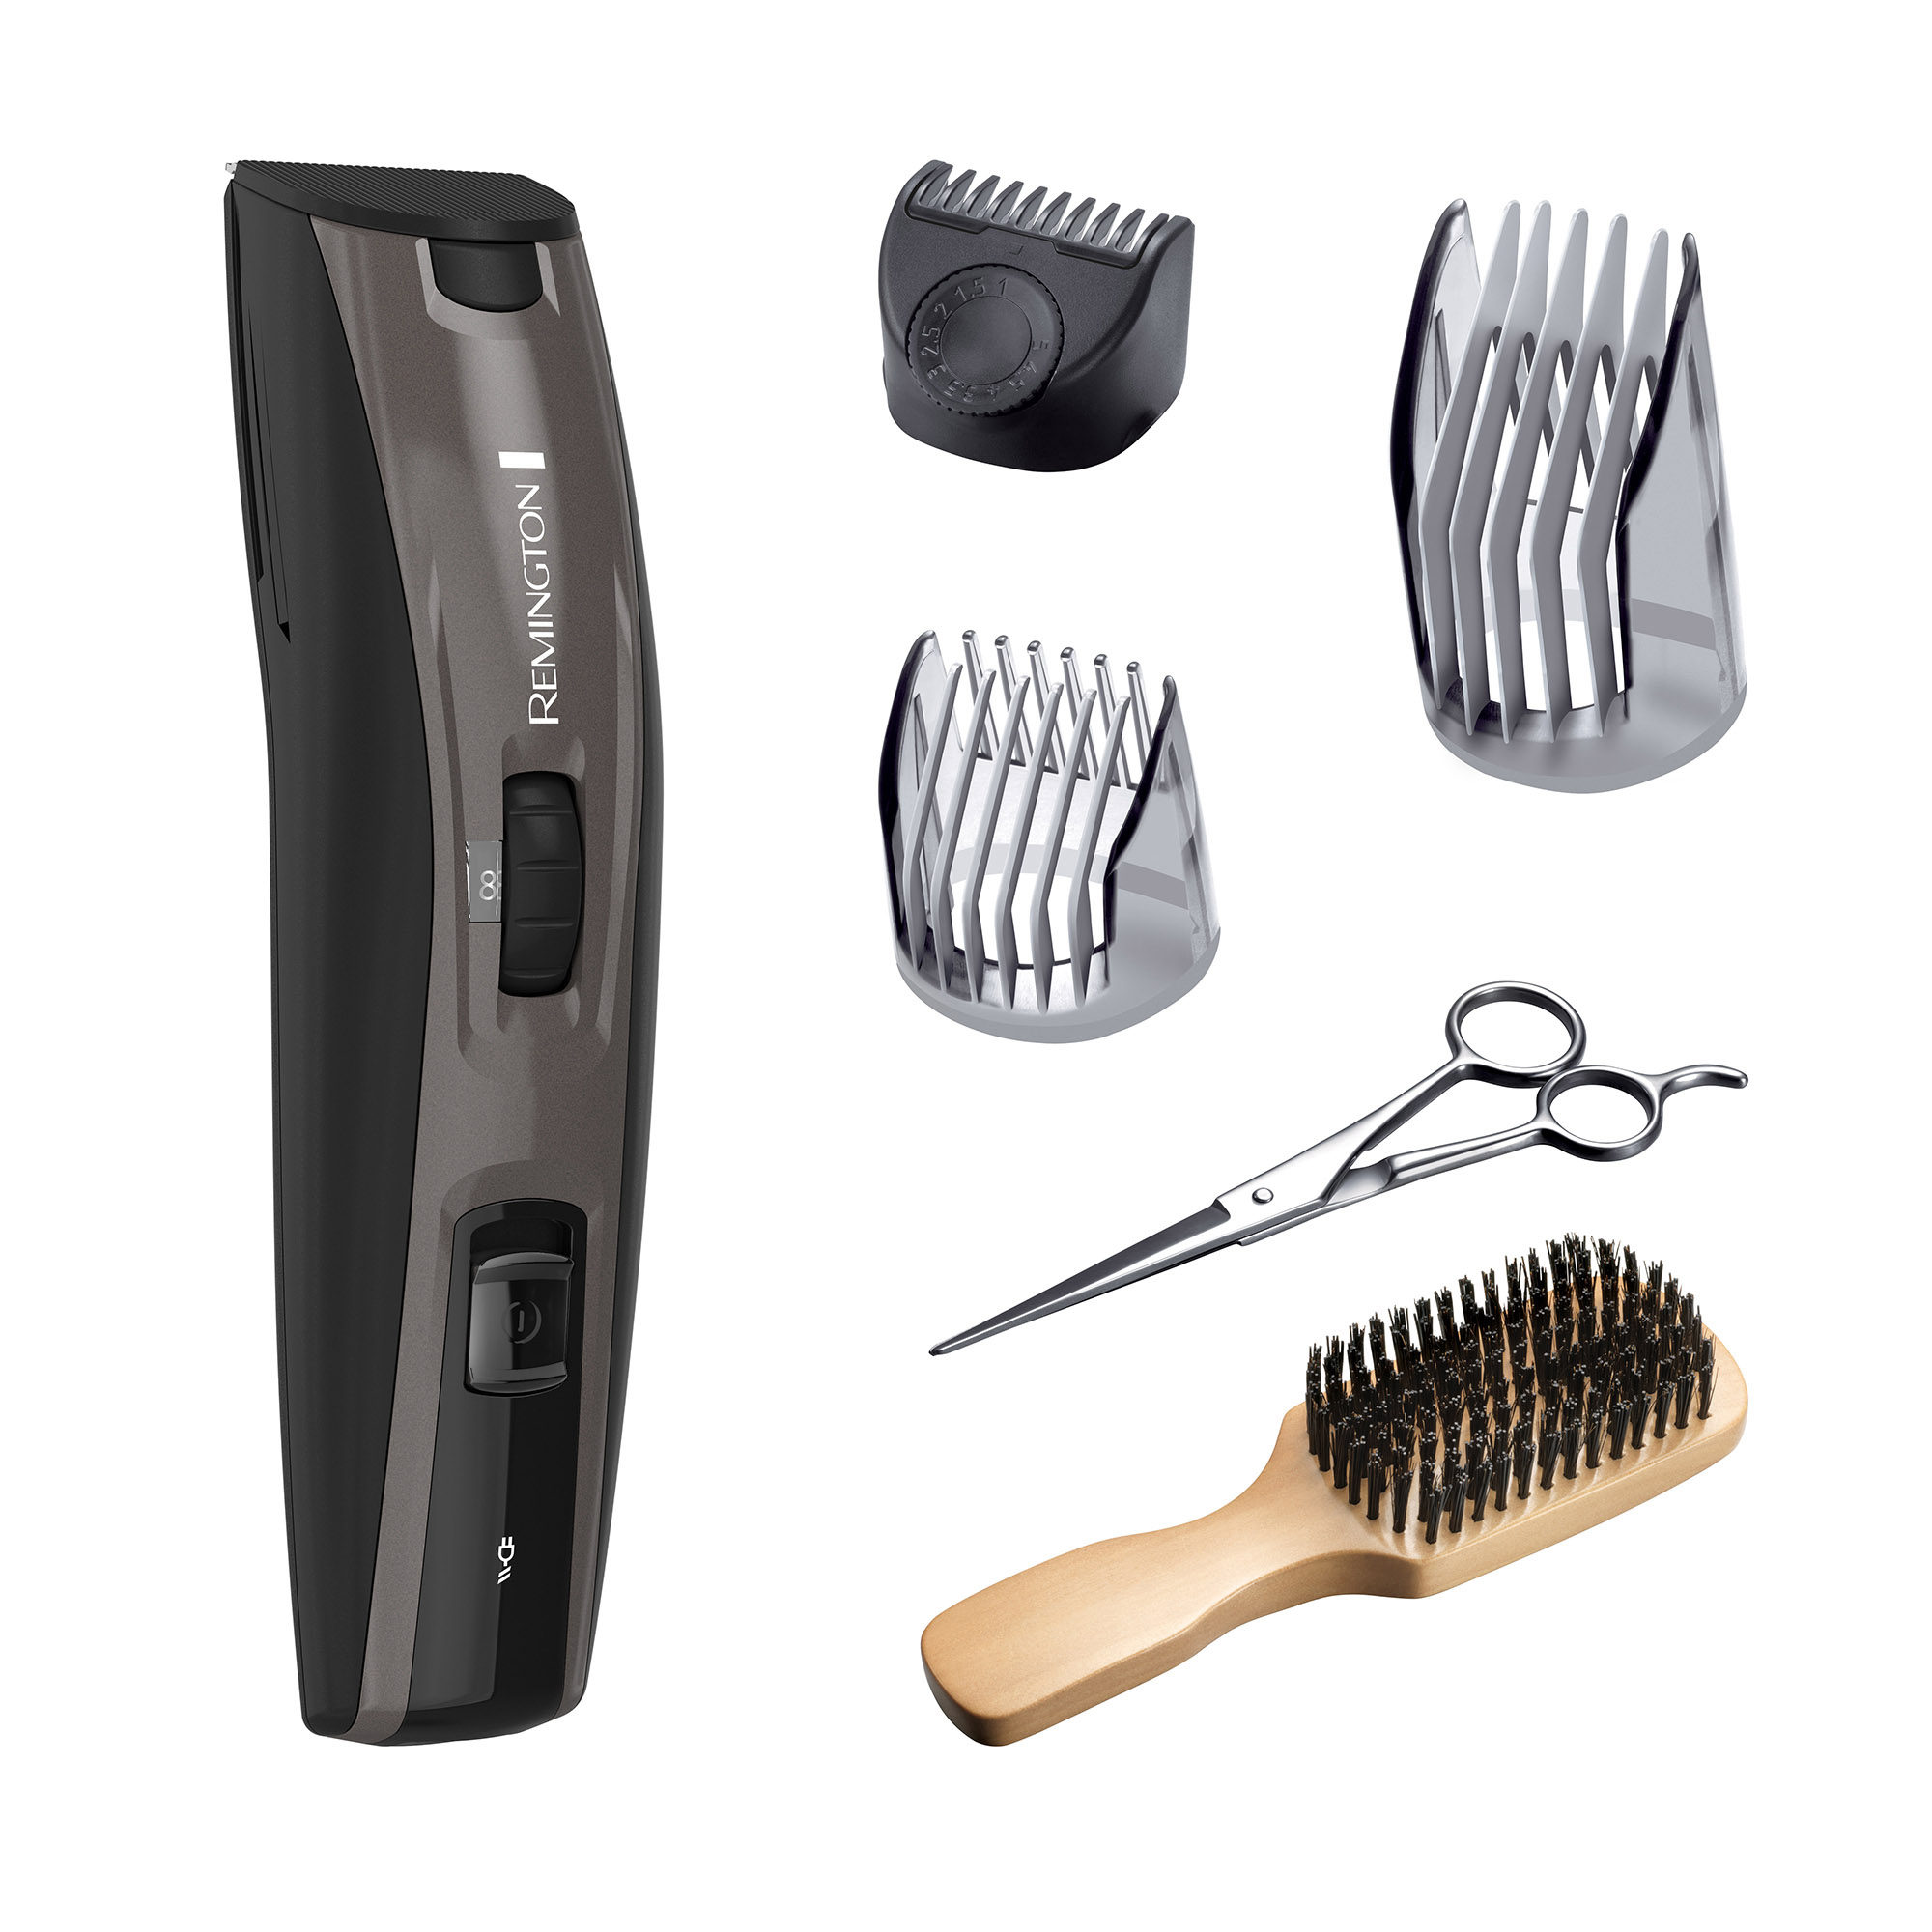 Remington Beard Boss Full Beard Grooming Kit, Grey, MB4045B